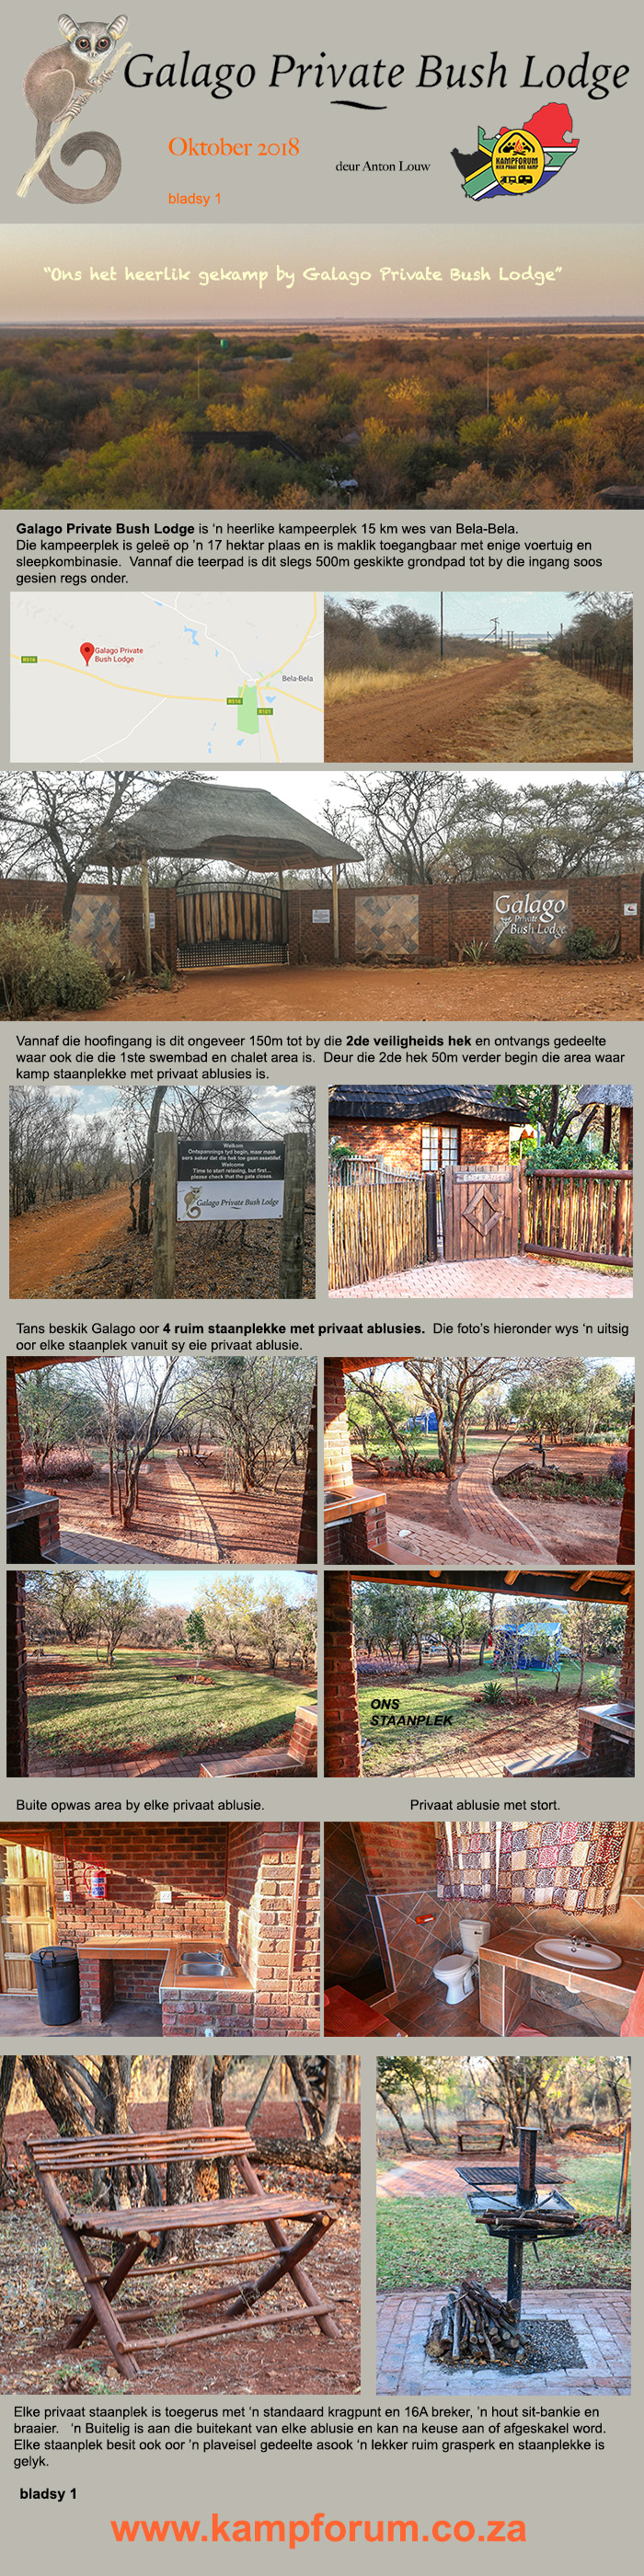 galago private bush lodge